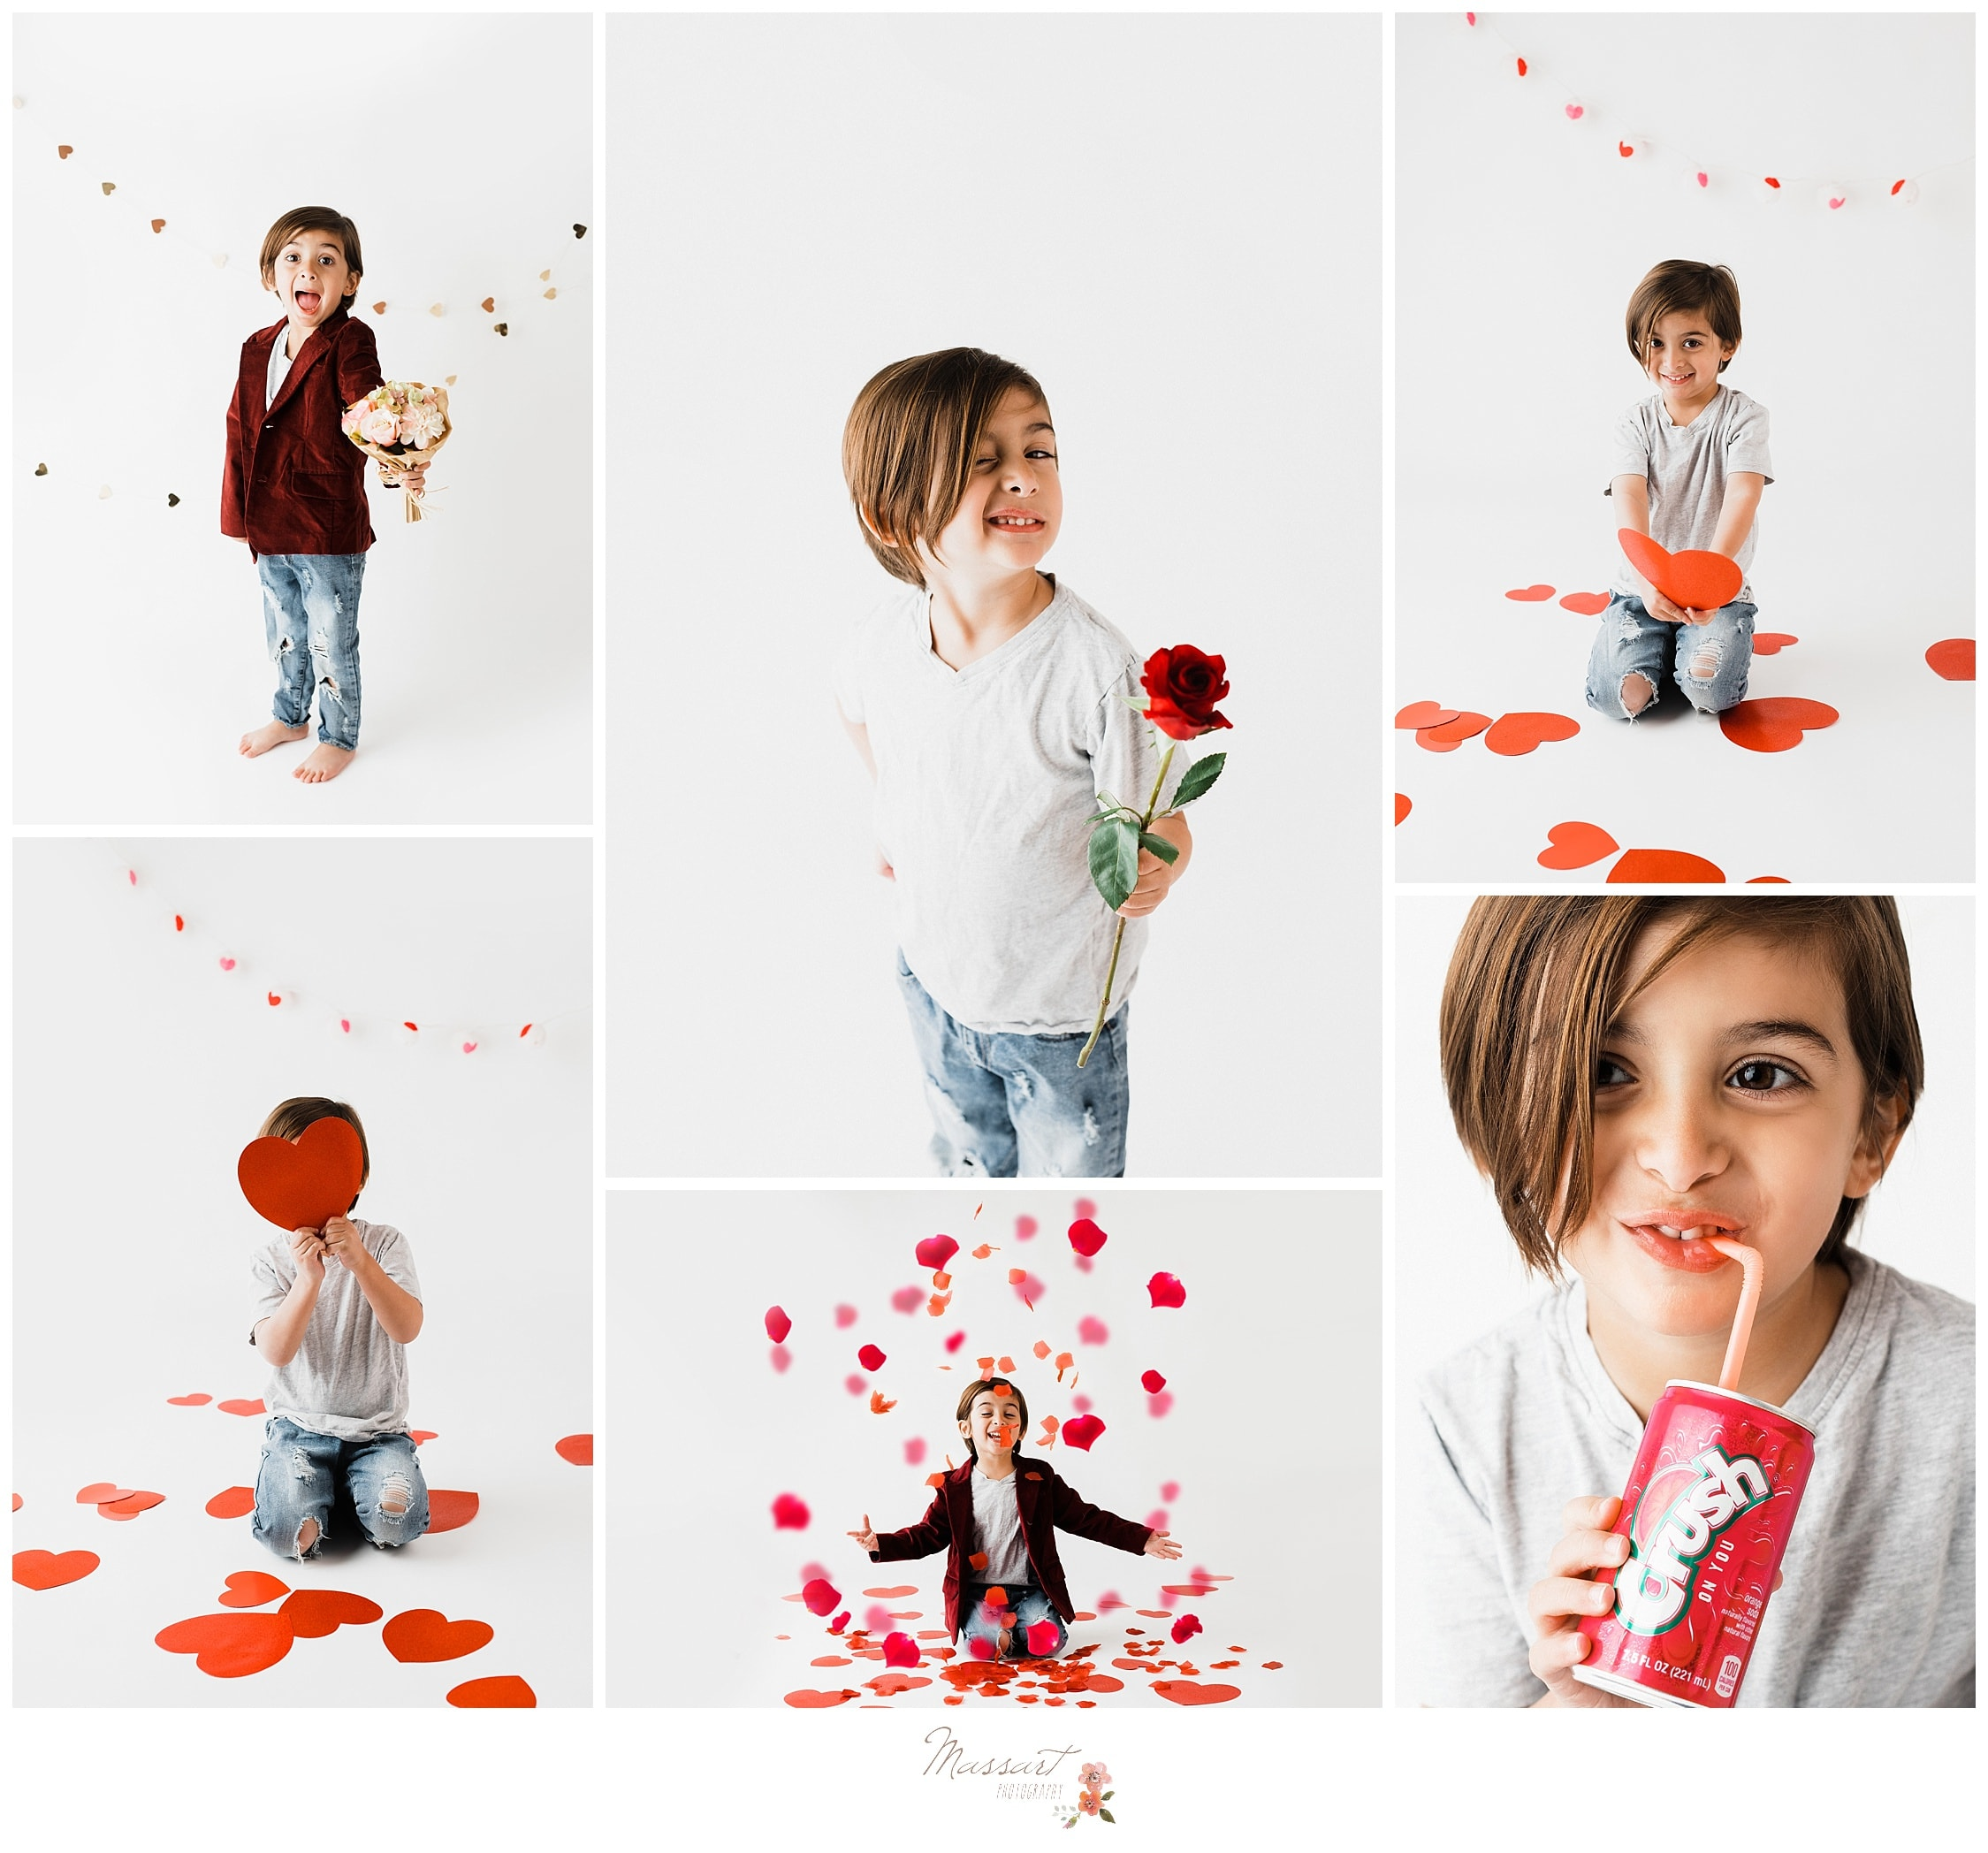 Valentine's day pictures with hearts and balloons by Massart Photography in Rhode Island